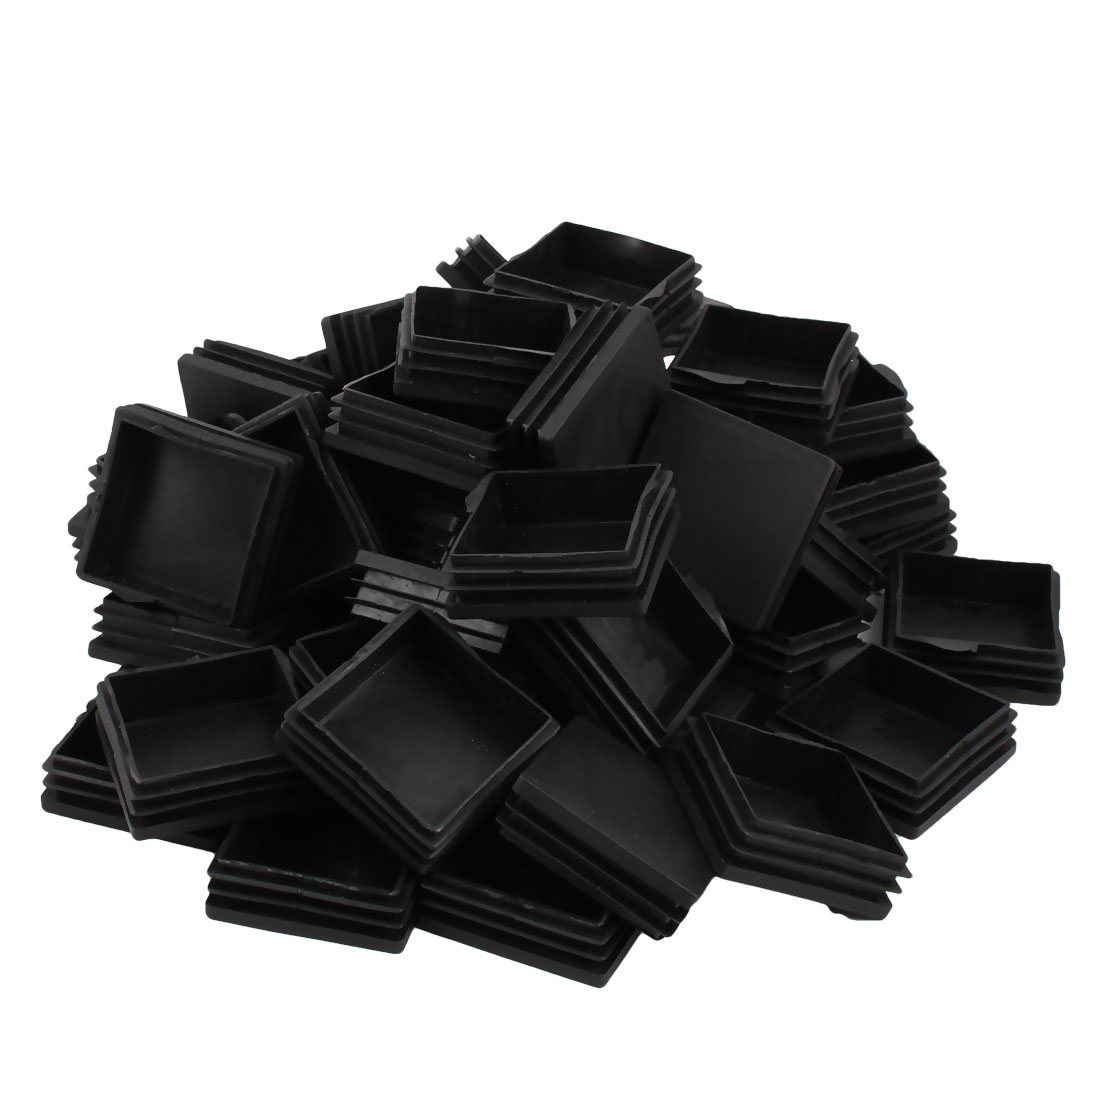 Table Chair Legs Plastic Flat Base Square Tube Pipe Feet Insert Cap Black 60mm x 60mm 50pcs